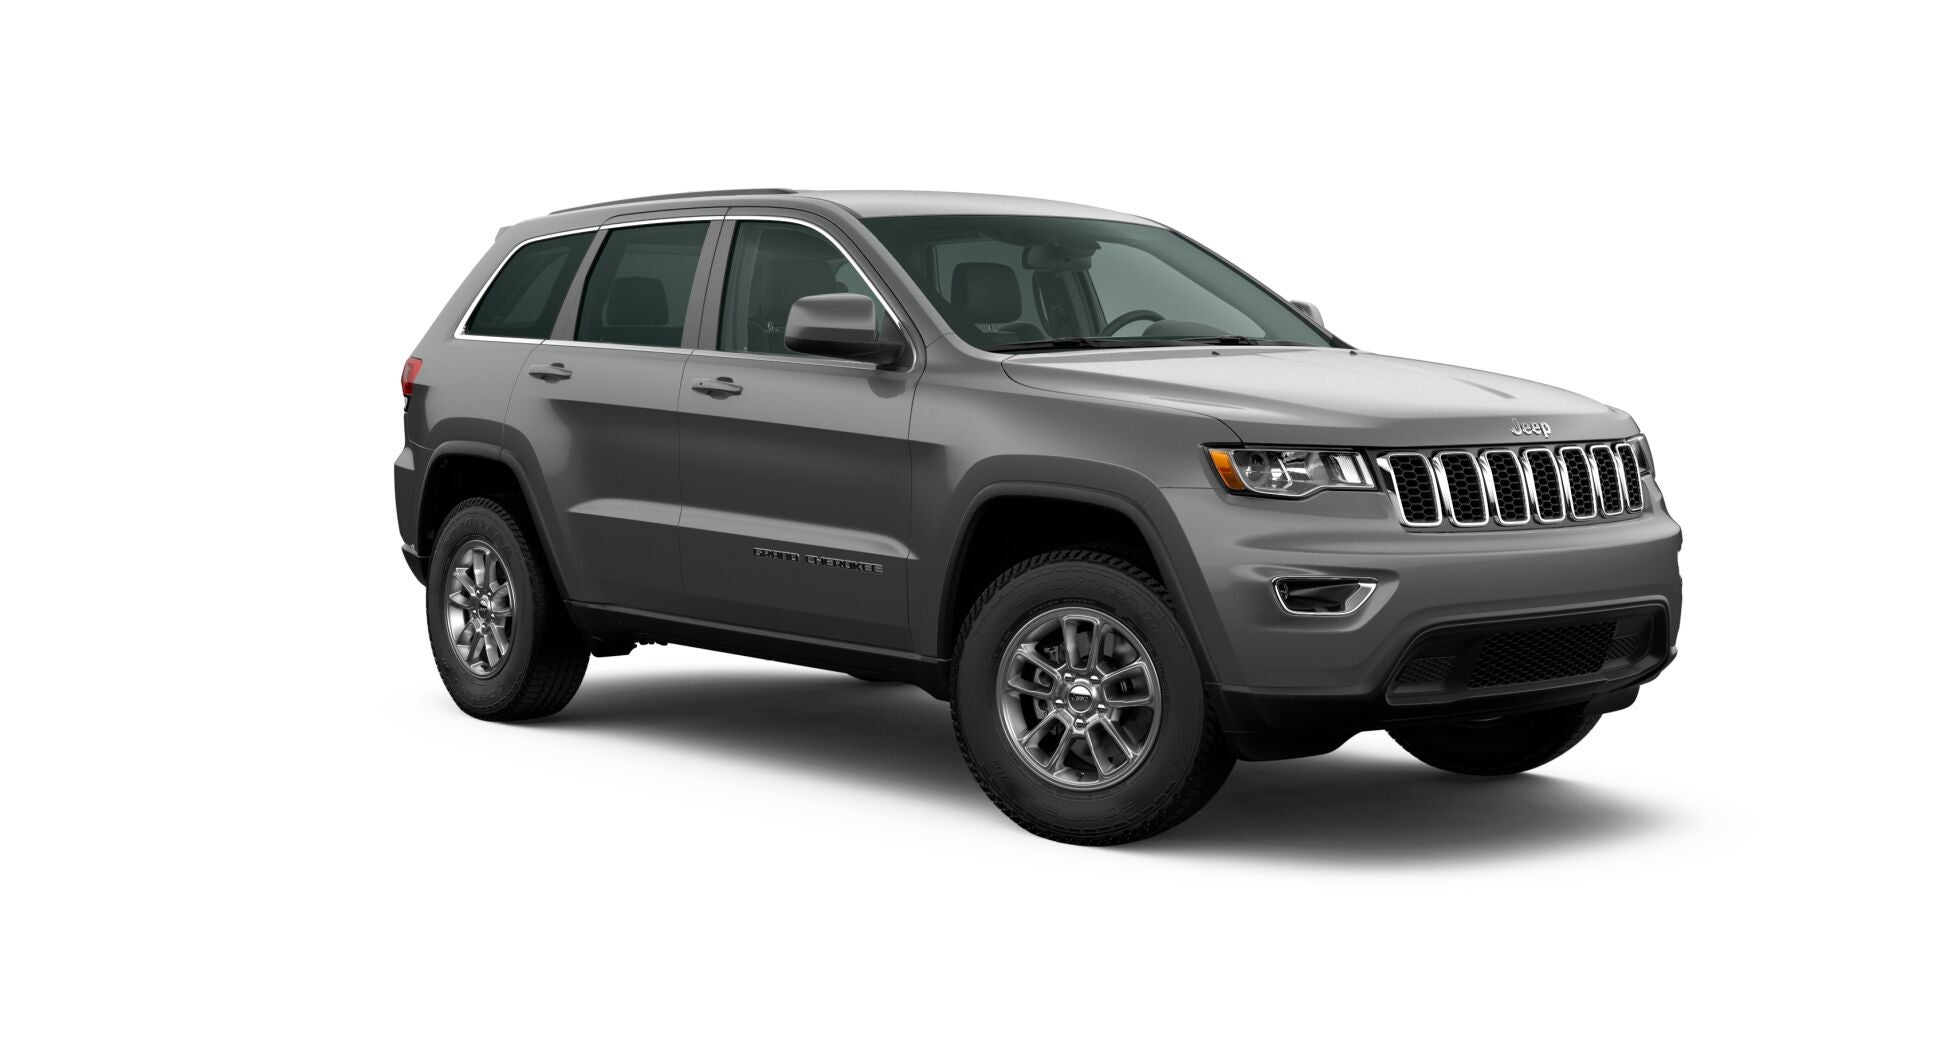 2020 Jeep Grand Cherokee Trim Levels Explained